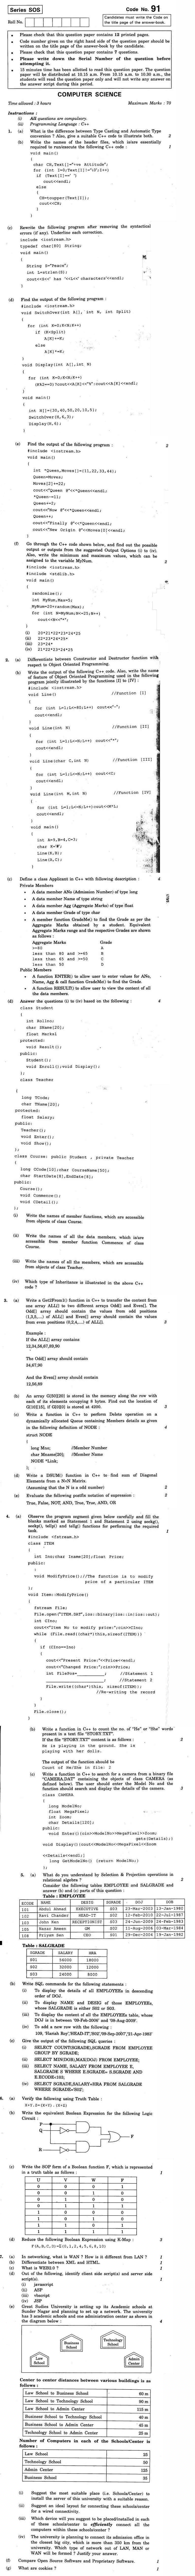 CBSE Class XII Previous Year Question Papers 2011 Computer Science